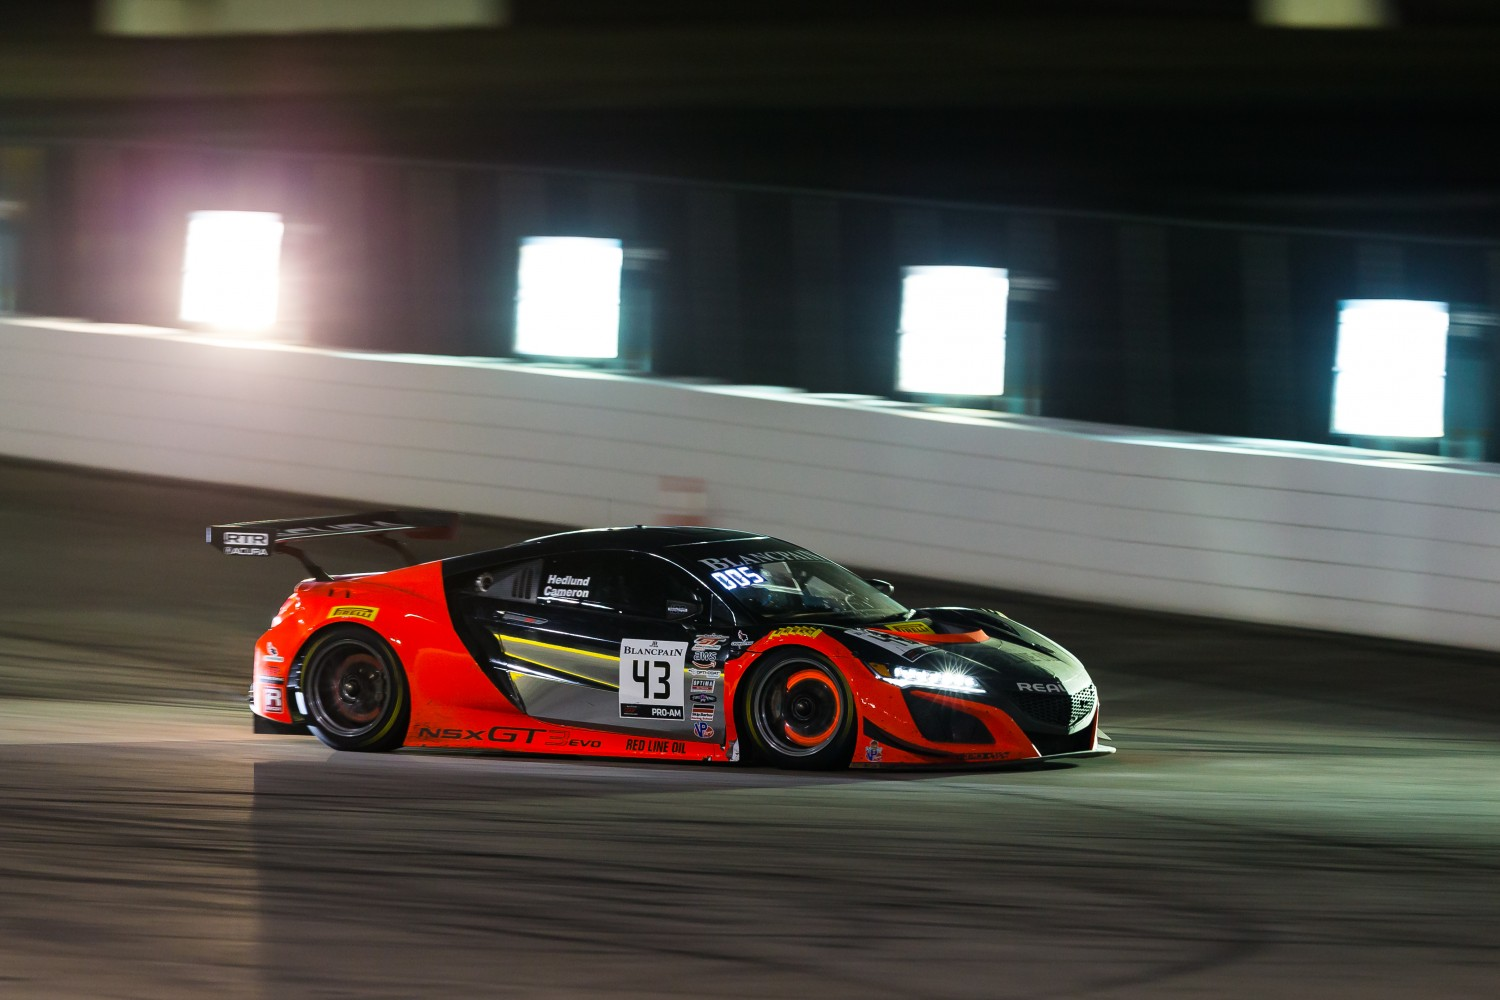 #43 Acura NSX of Mike Hedlund and Dane Cameron with RealTime Racing  2019 Blancpain GT World Challenge America - Las Vegas, Las Vegas NV | Fabian Lagunas/SRO